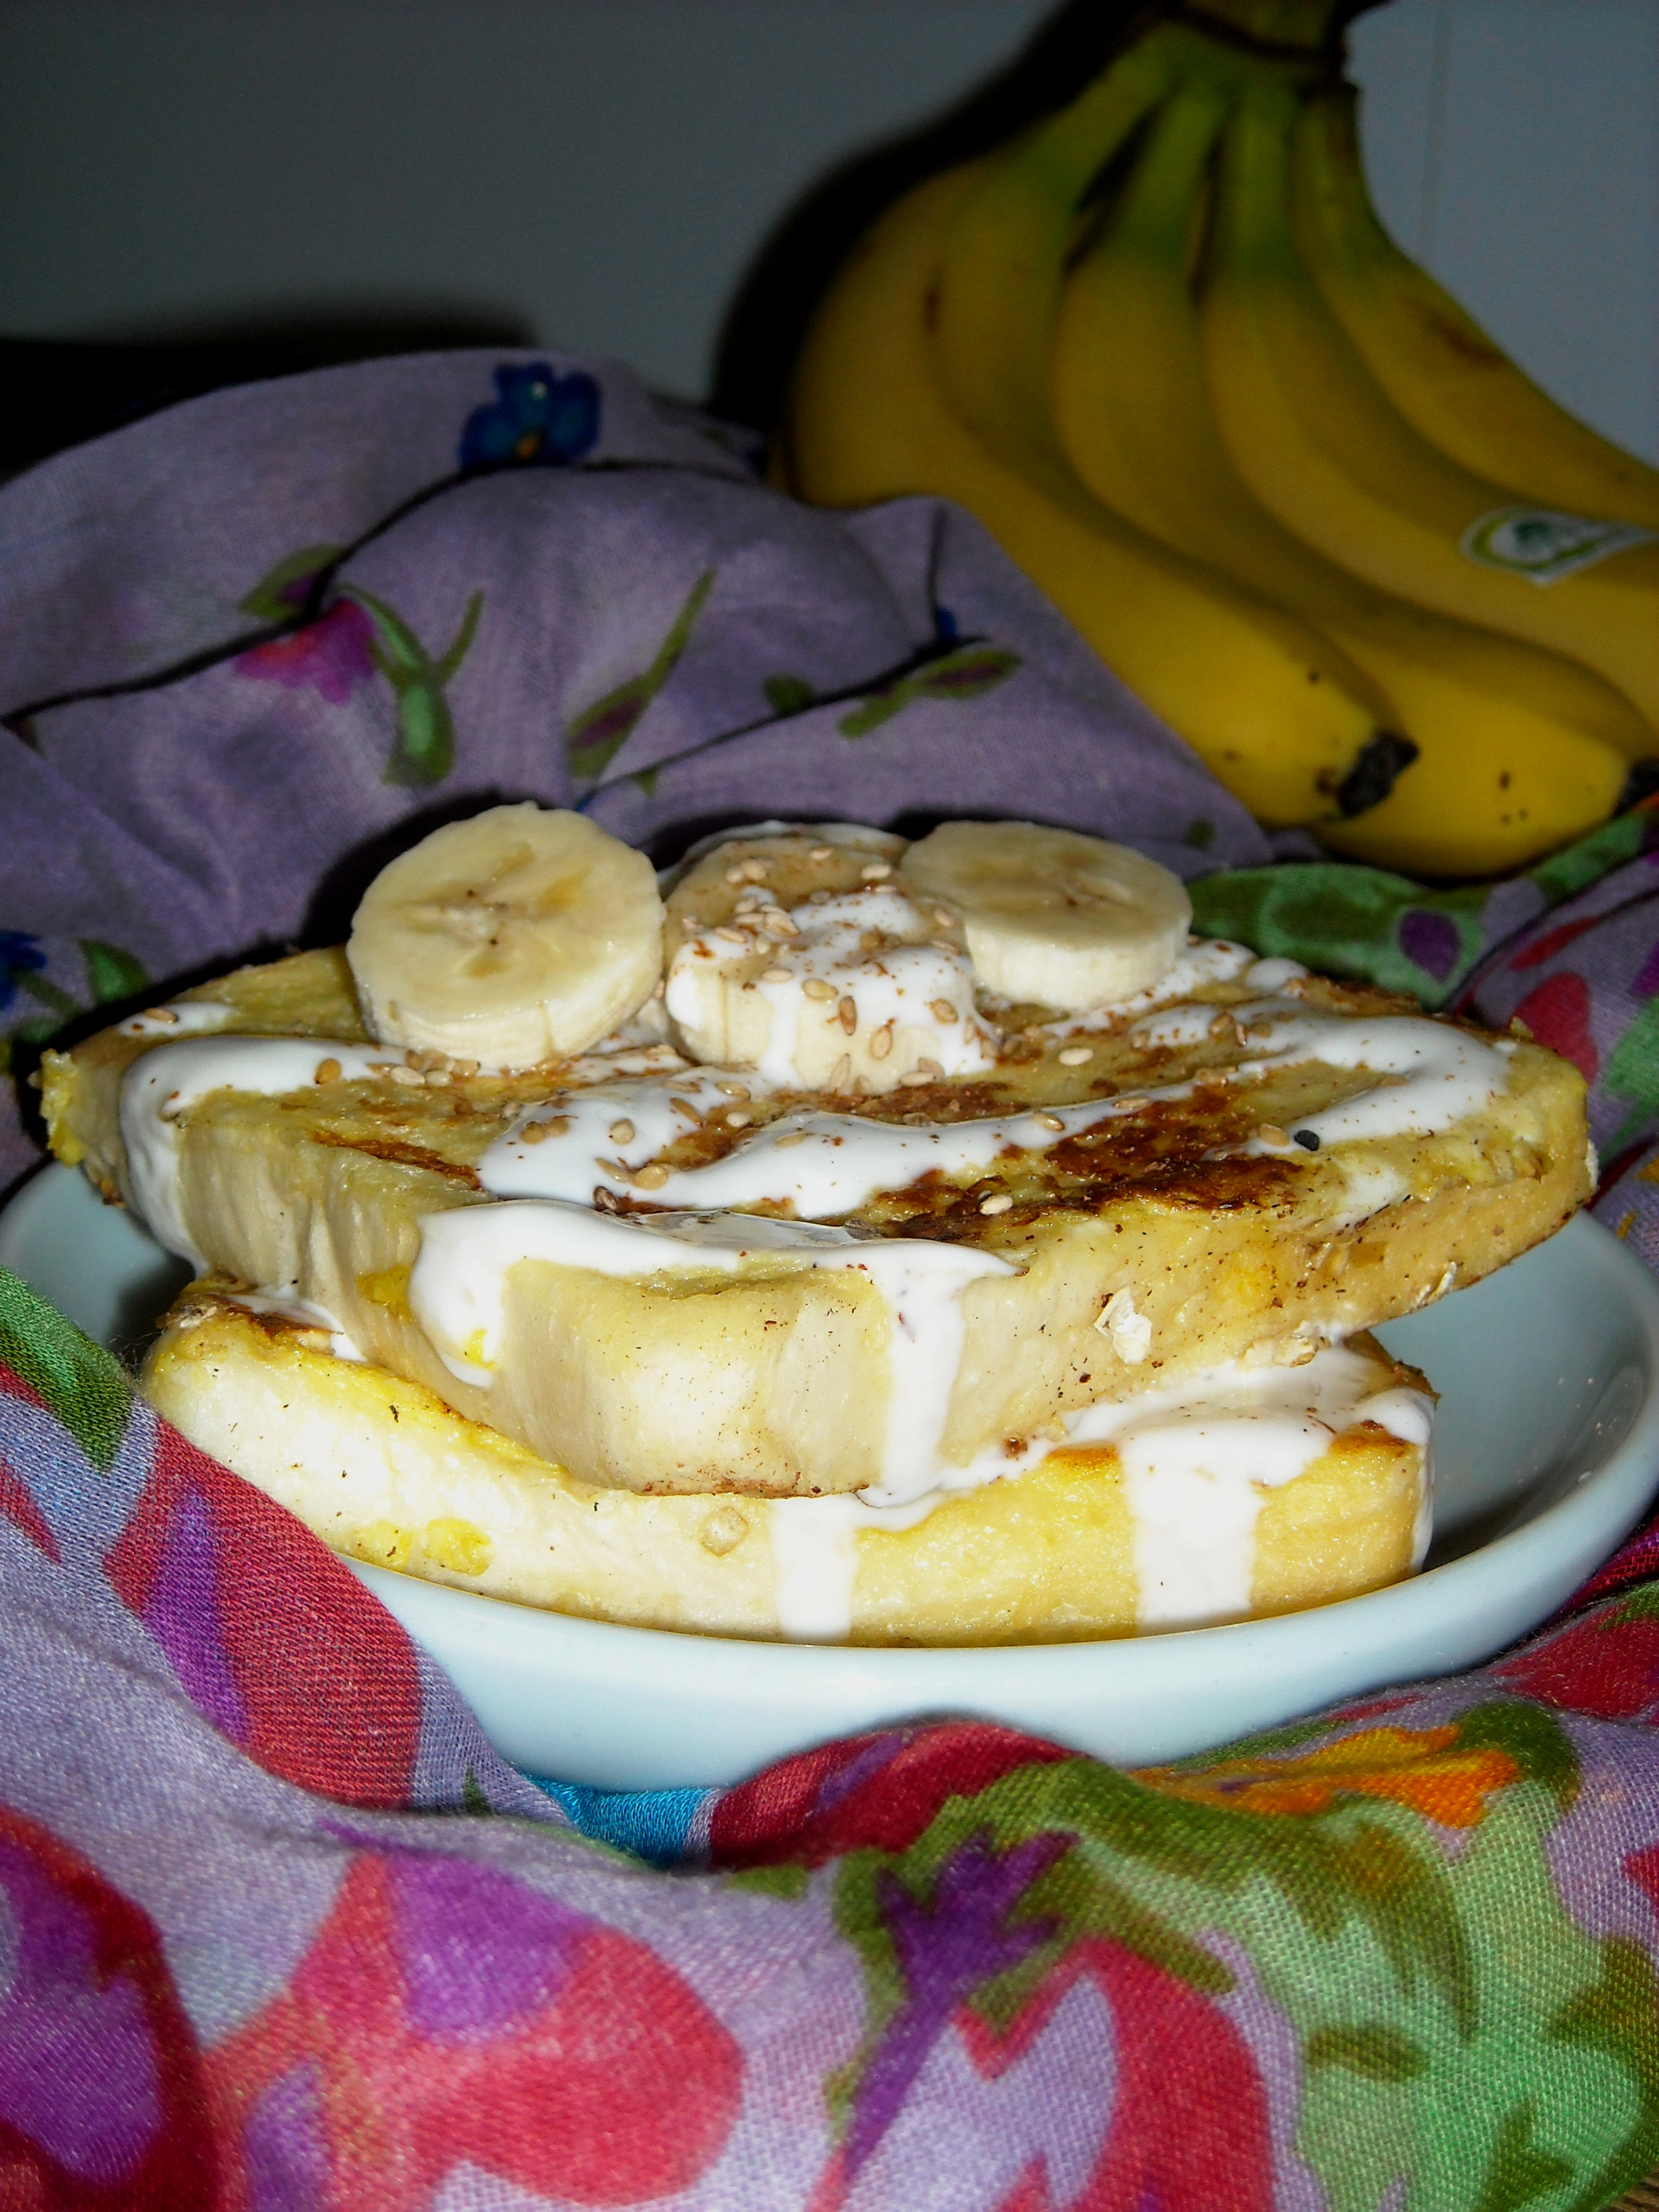 French Toast With Bananas And Yogurt